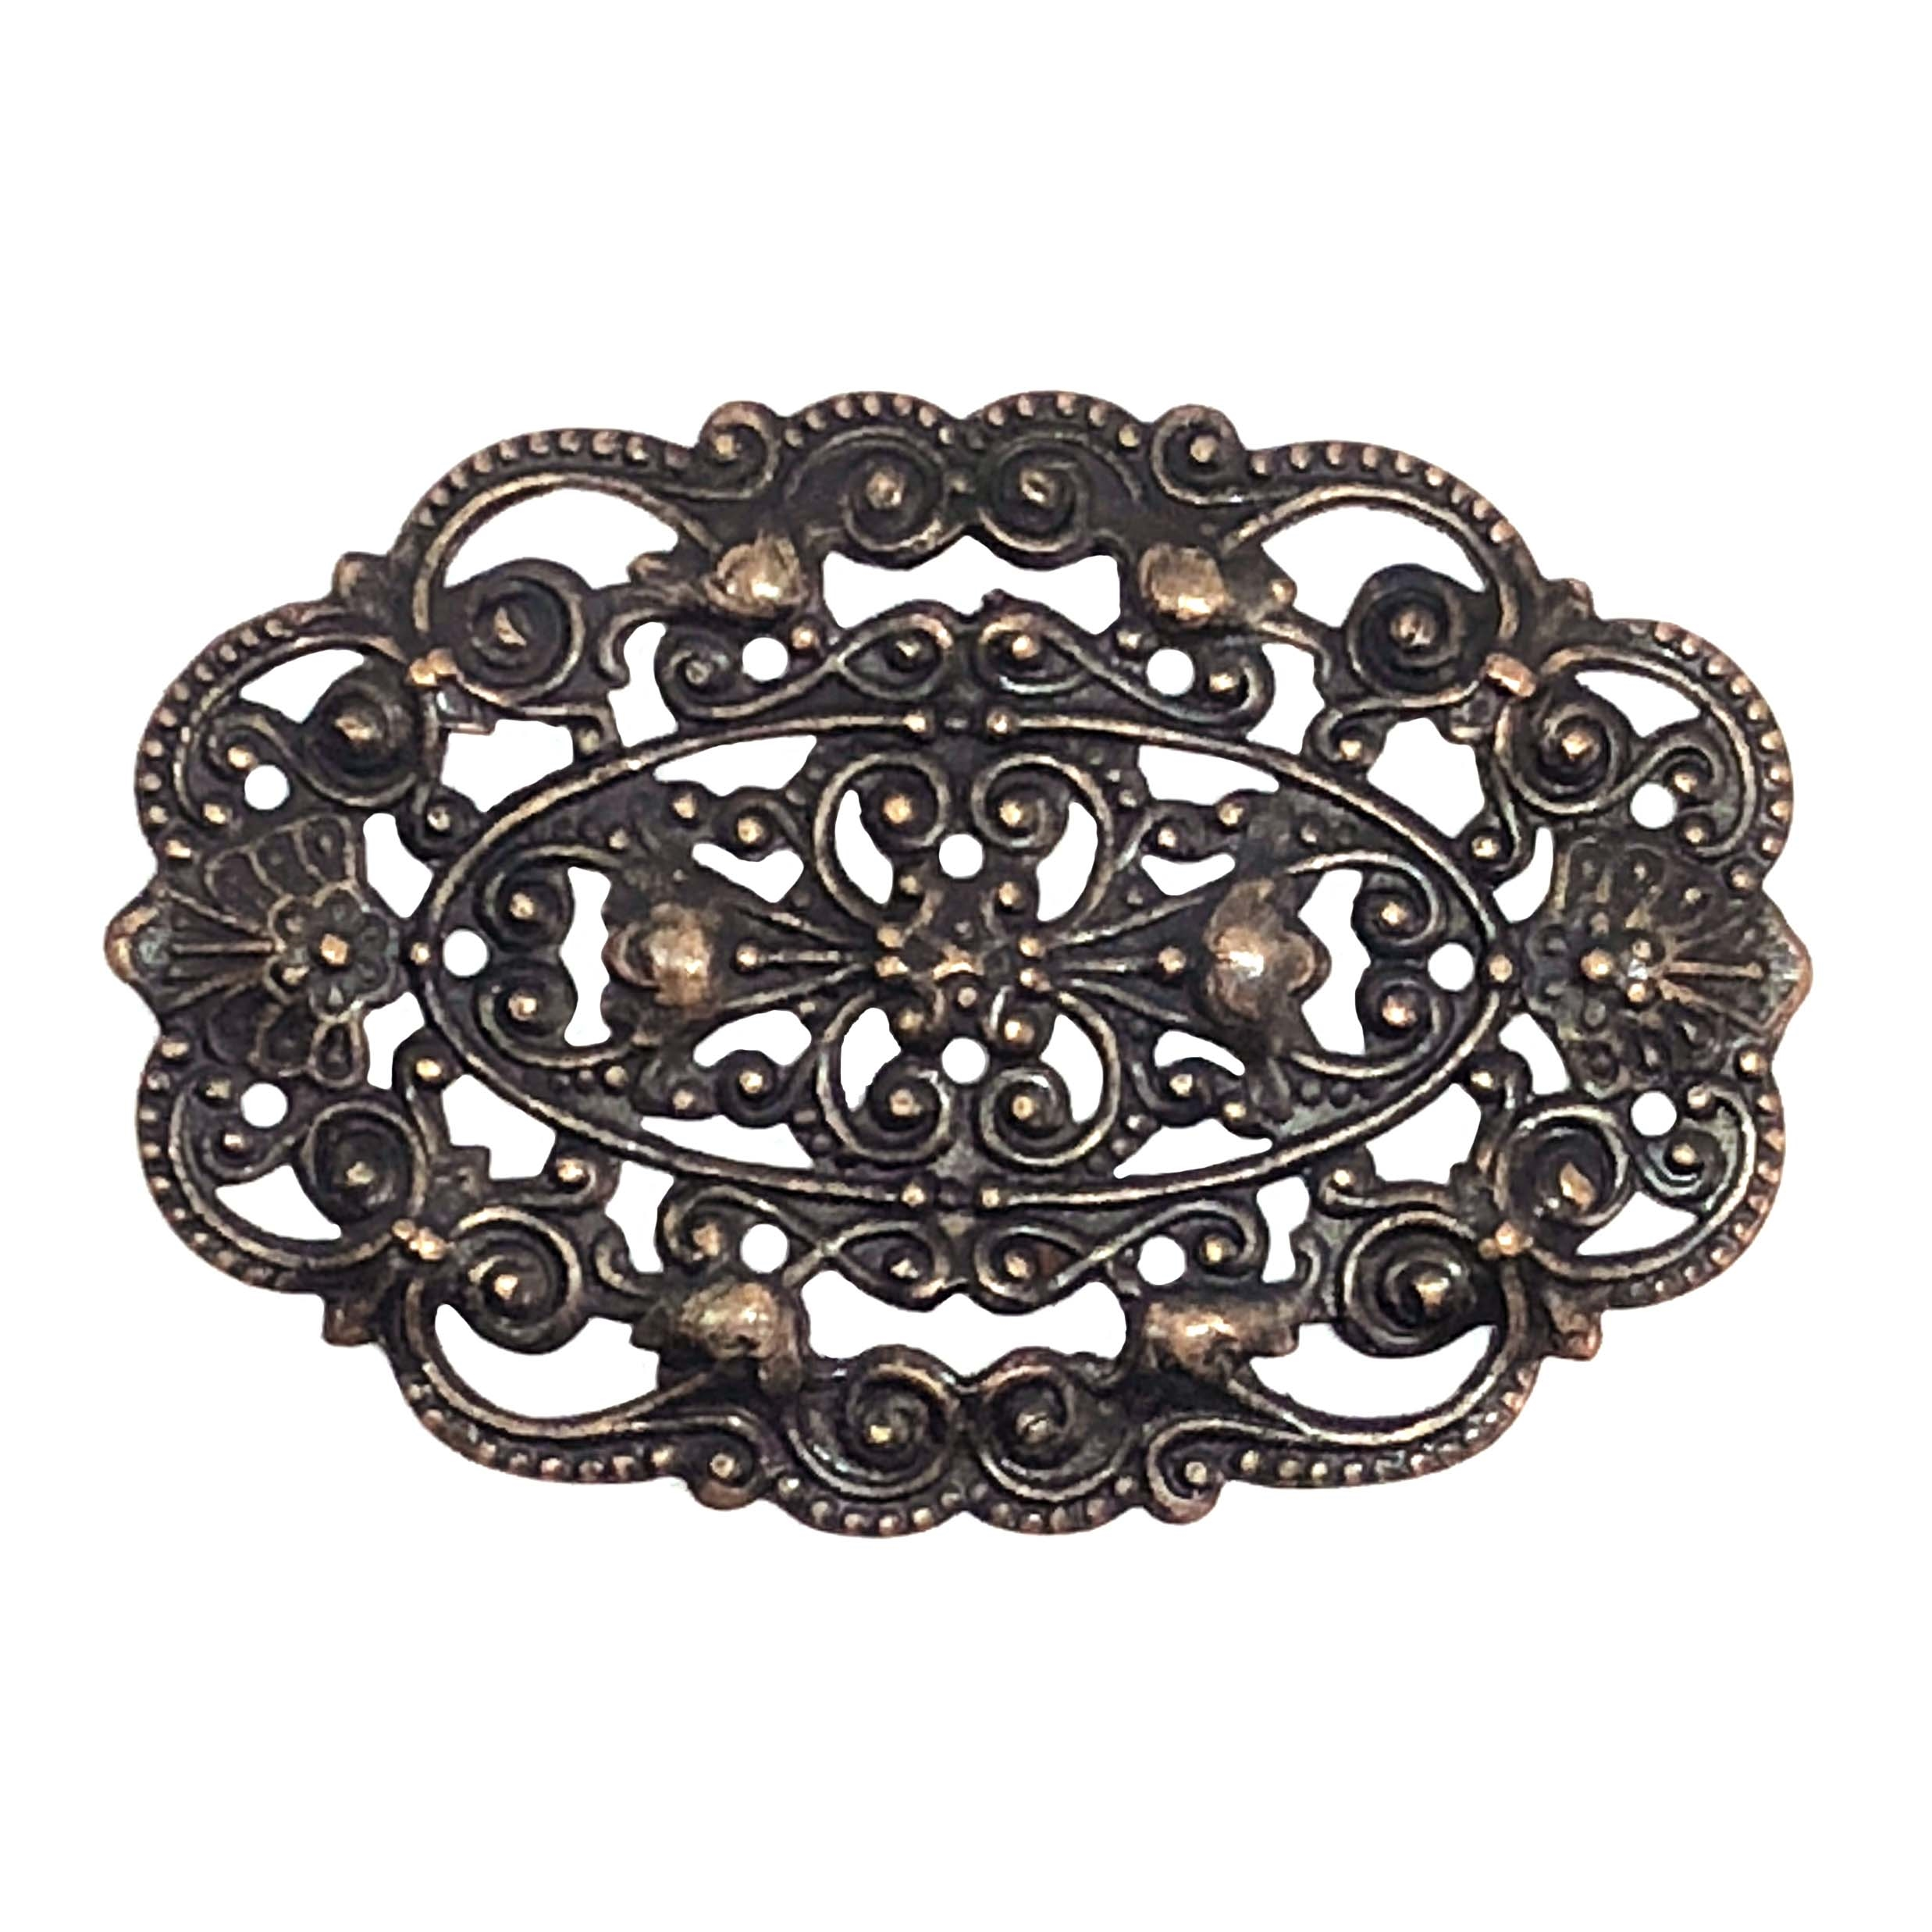 victorian beading filigree, rusted iron, filigree, beading filigree, victorian design, US made, nickel free, copper accents, filigree centerpiece, jewelry supplies, vintage supplies, jewelry making, B'sue Boutiques, 30x44mm, 08629, plaque